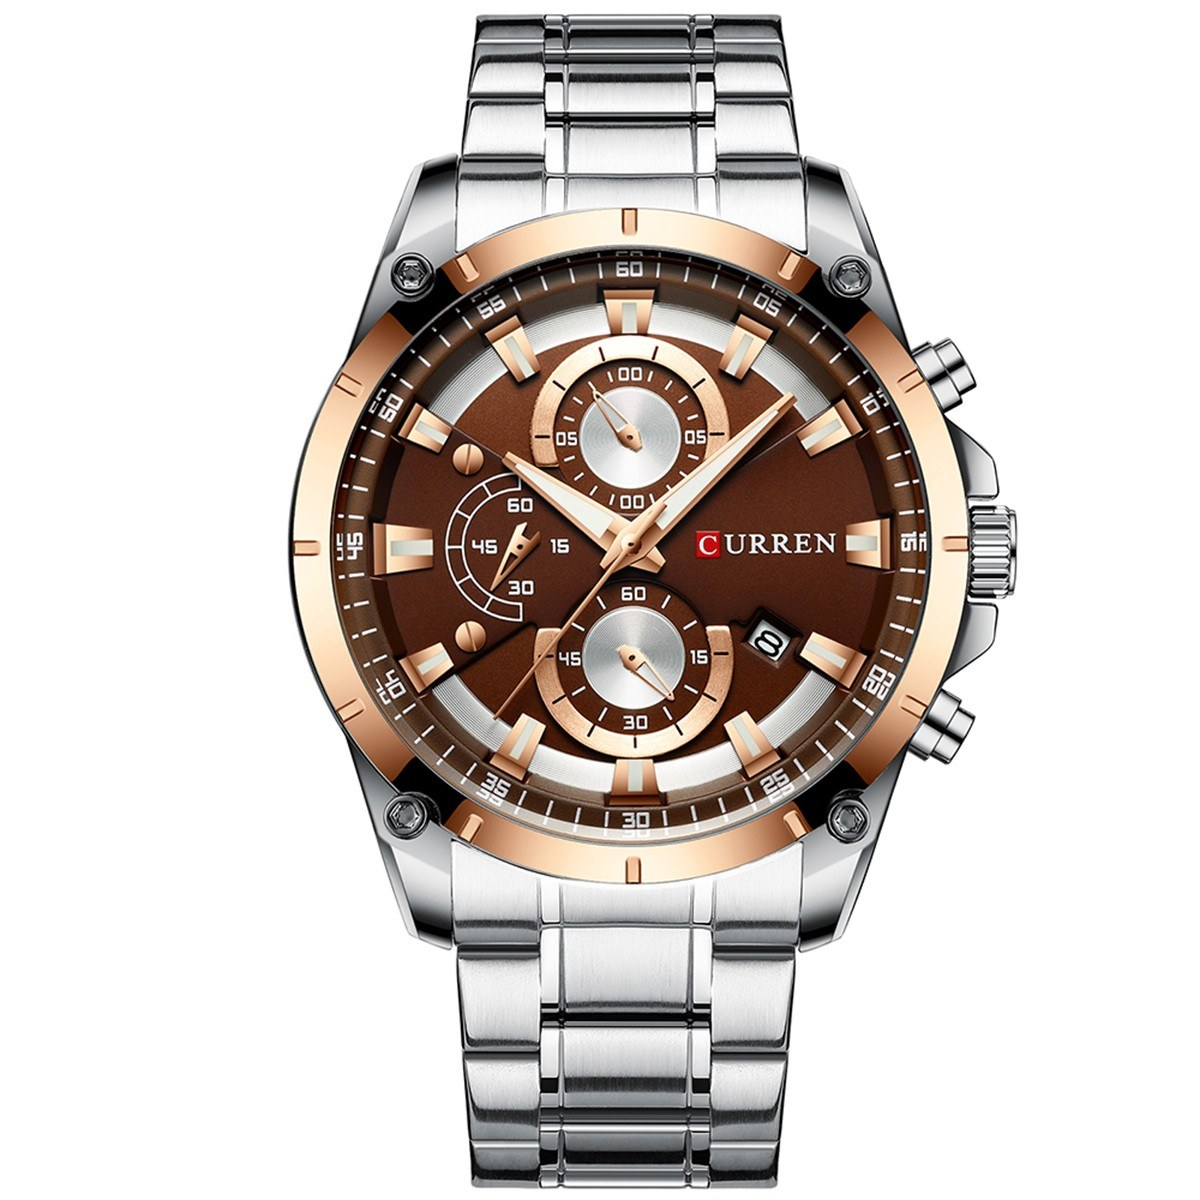 CURREN 8360 Luxury Business Classic Quartz Men Watch 3ATM Waterproof Luminous Wrist Watch Calendar Indicator Three Sub-Dials Second Minute Microsecond Chronograph Wristwatch for Men with Stainless Steel Strap Band